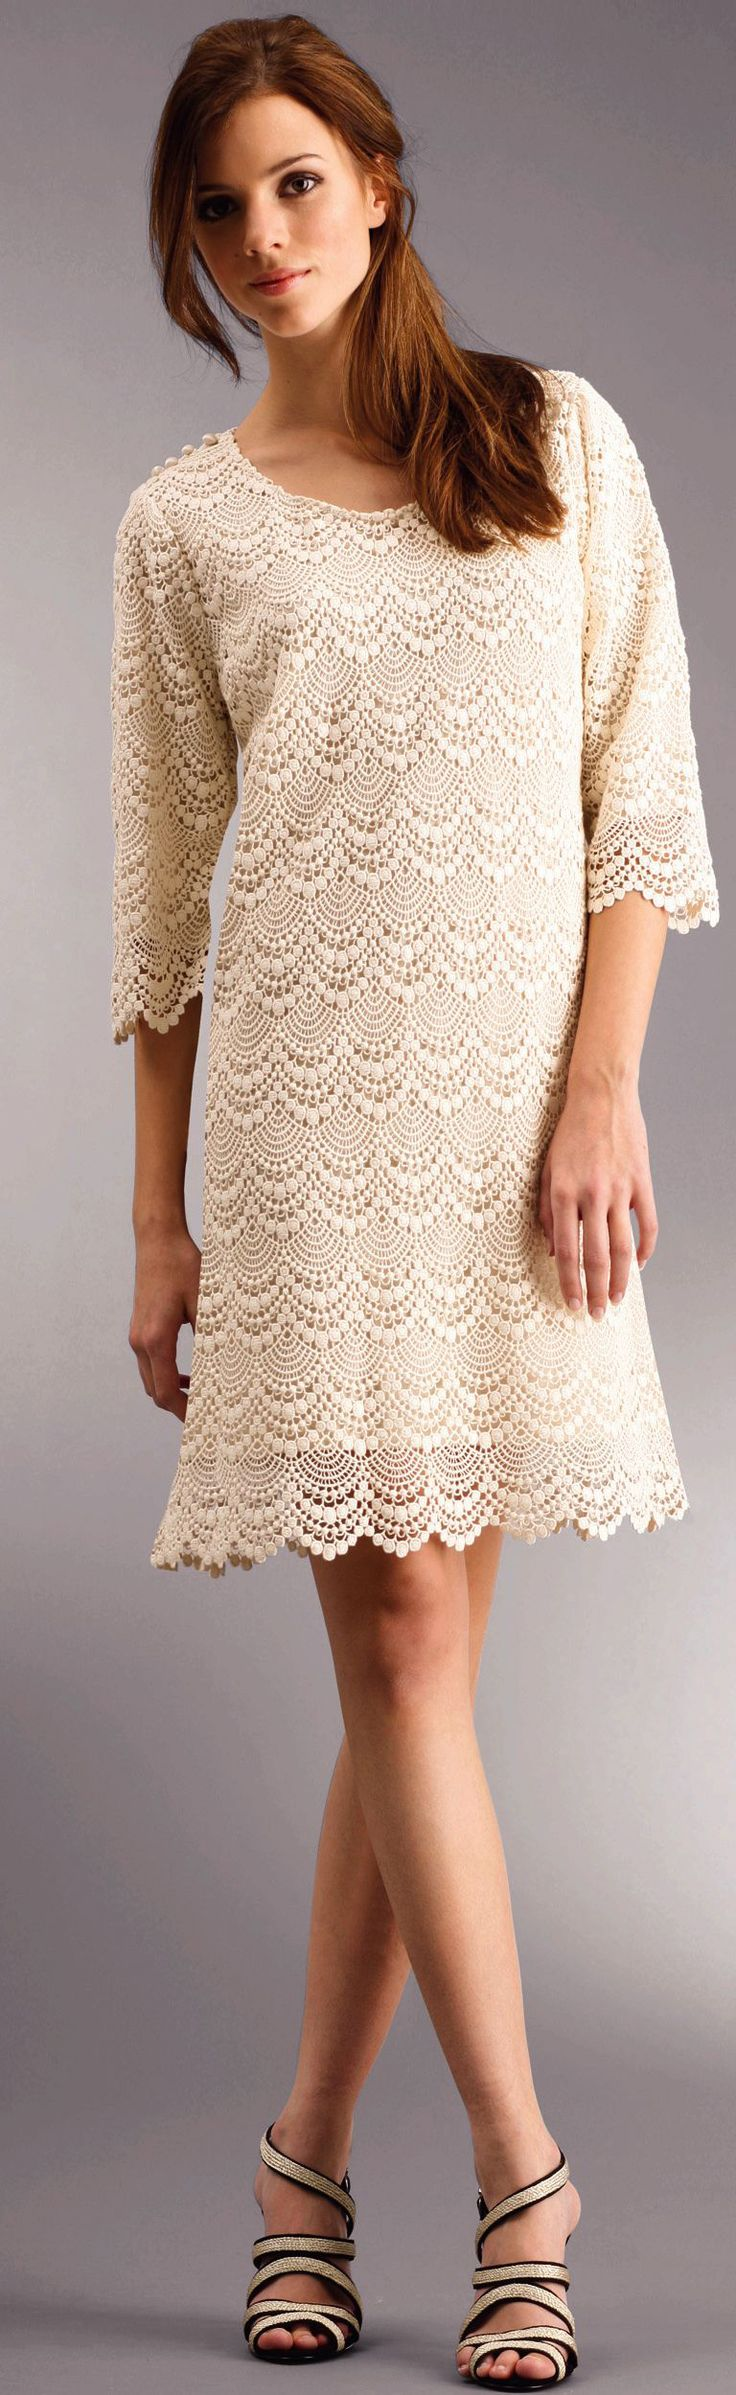 """Crochet dress with diagram - This is for advanced level, very detailed. }}{{ I'm going to hide this from my daughter, because she will added to her """"I list""""."""